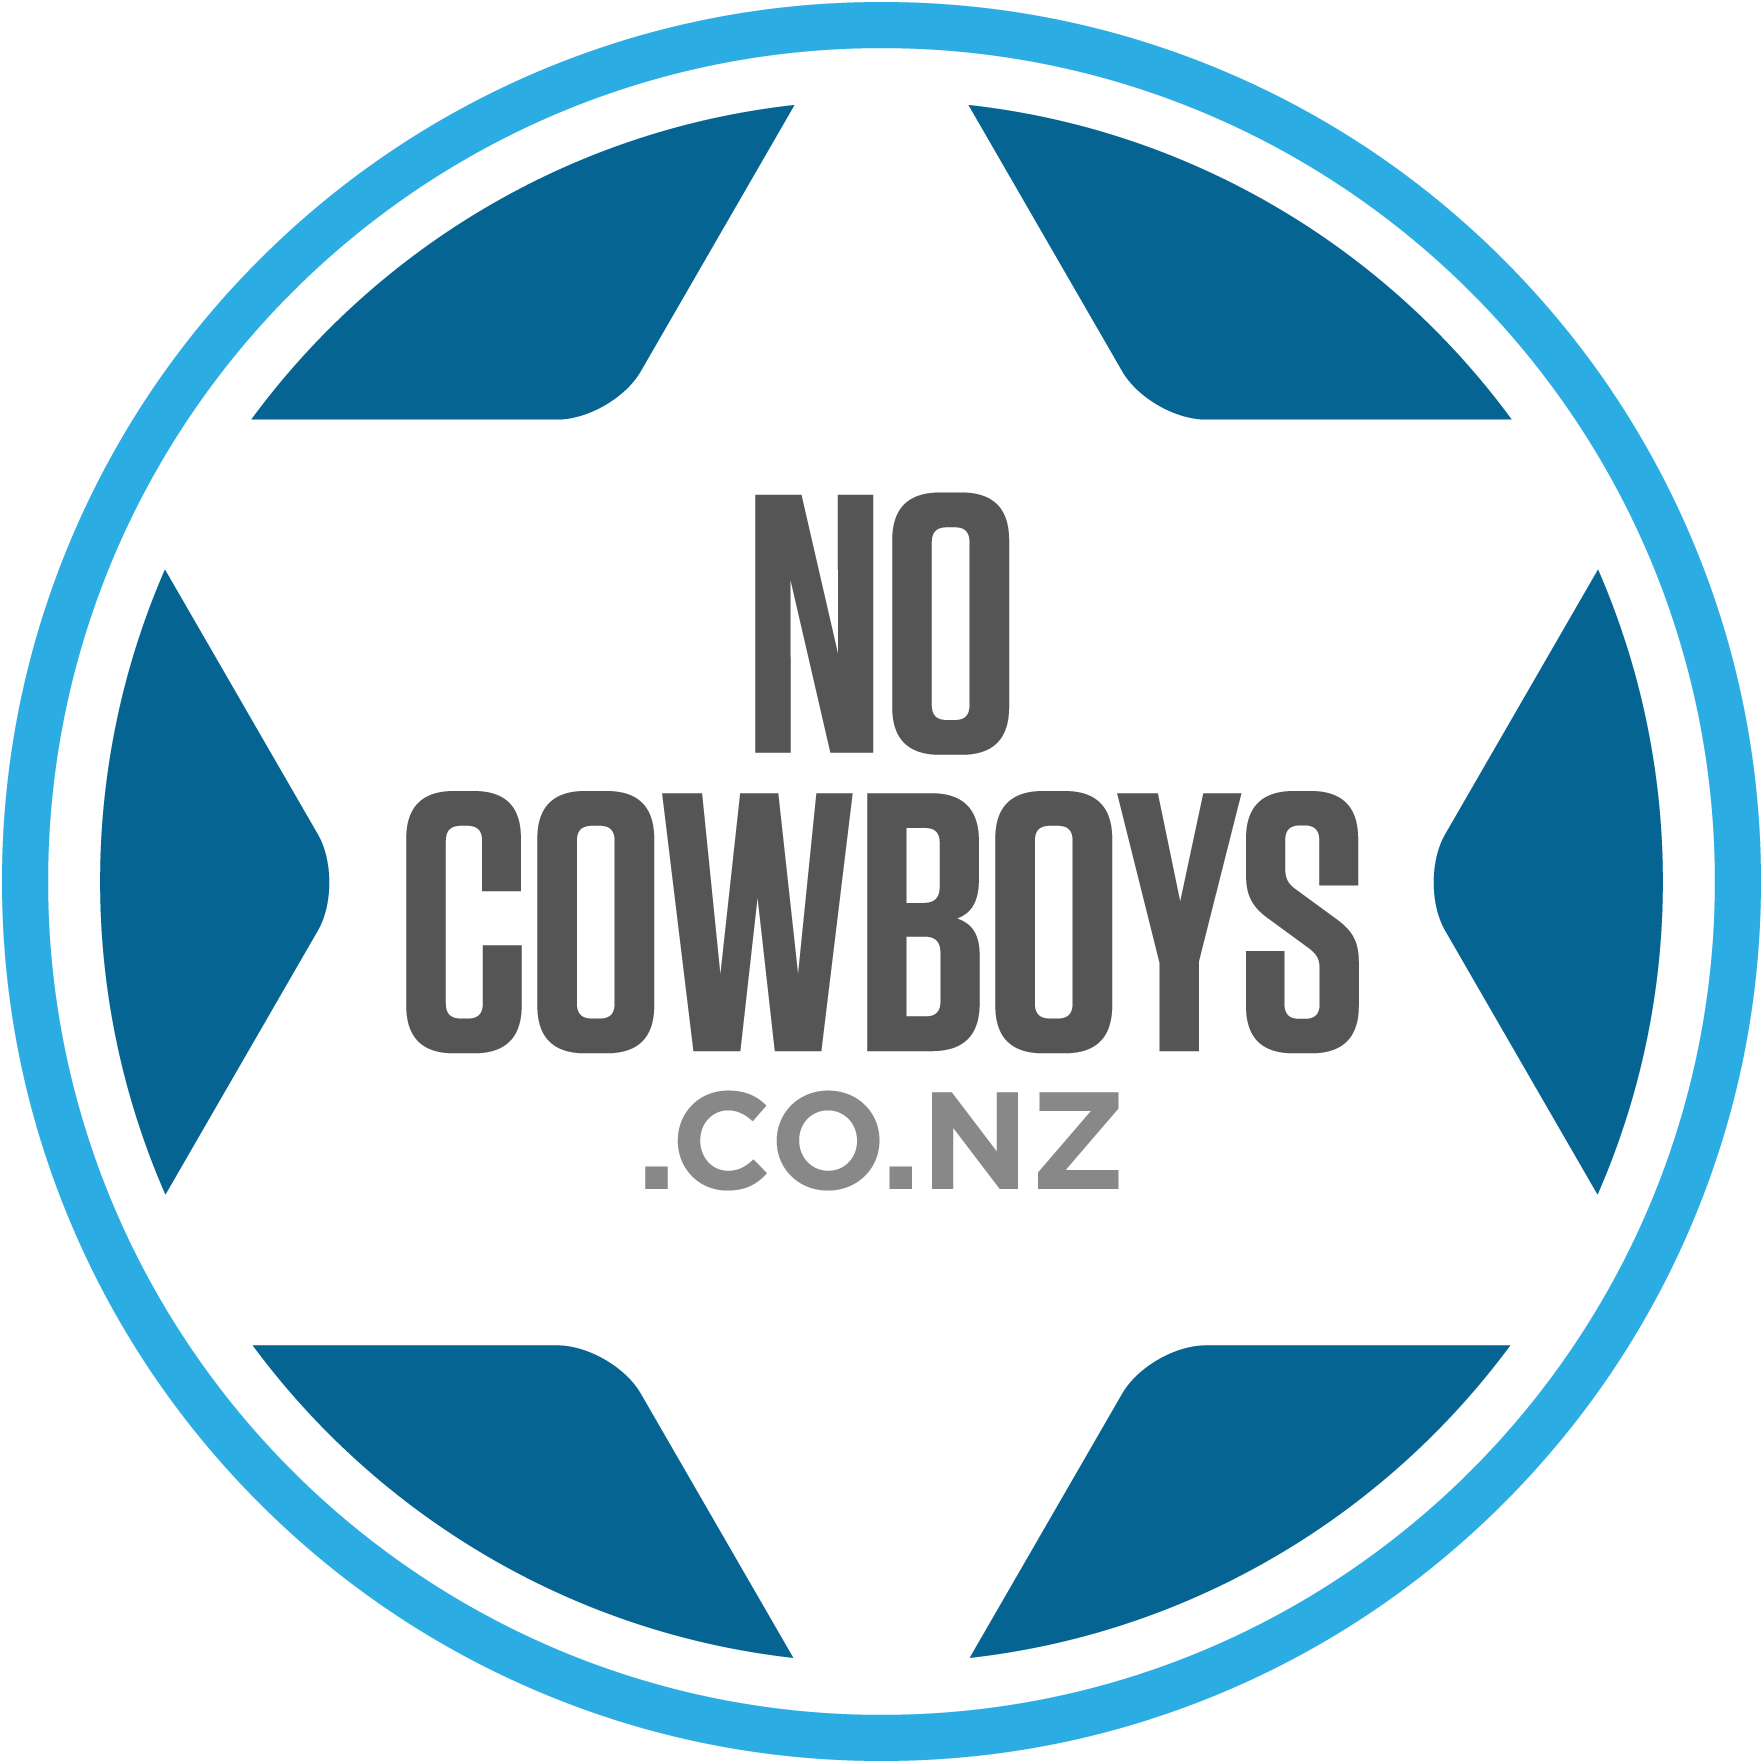 Sticker - NoCowboys.co.nz